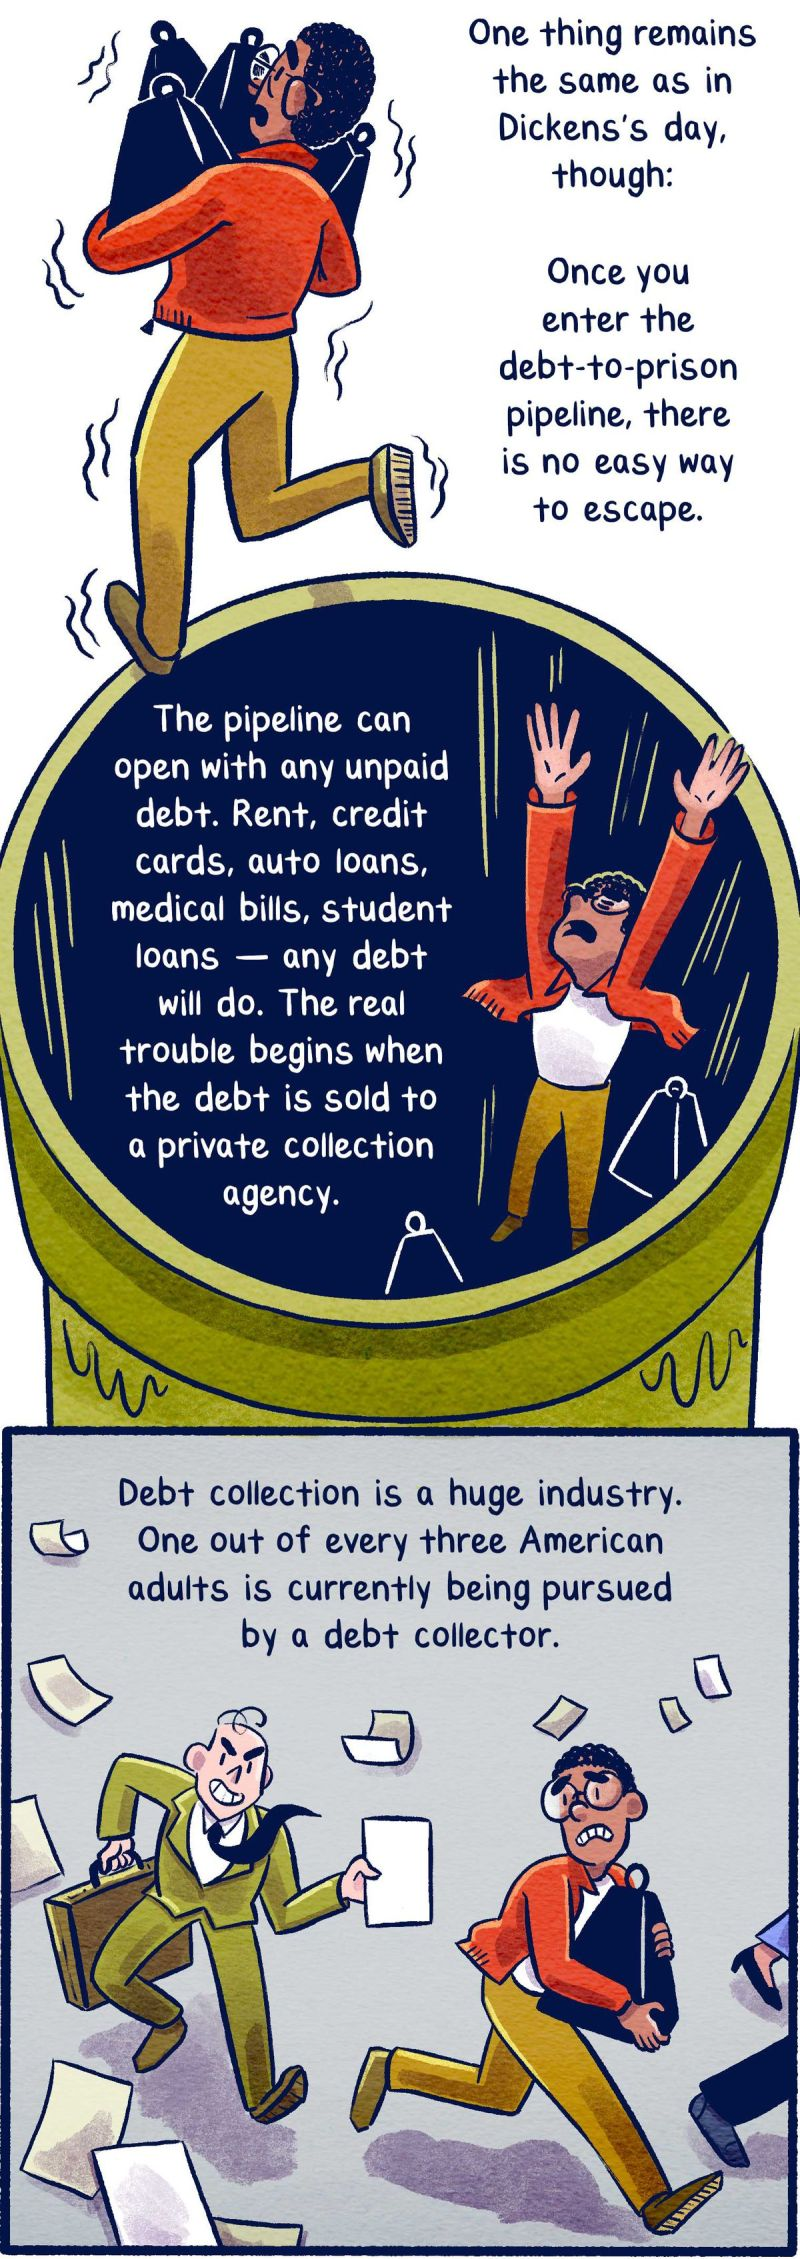 One thing remains the same as in Dickens's day, though: Once you enter the debt-to-prison pipeline, there is no easy way to escape. The pipeline can open with any unpaid debt. Rent, credit cards, auto loans, medical bills, student loans — any debt will do. The real trouble begins when the debt is sold to a private collection agency. Debt collection is a huge industry. One out of every three American adults is currently being pursued by a debt collector.